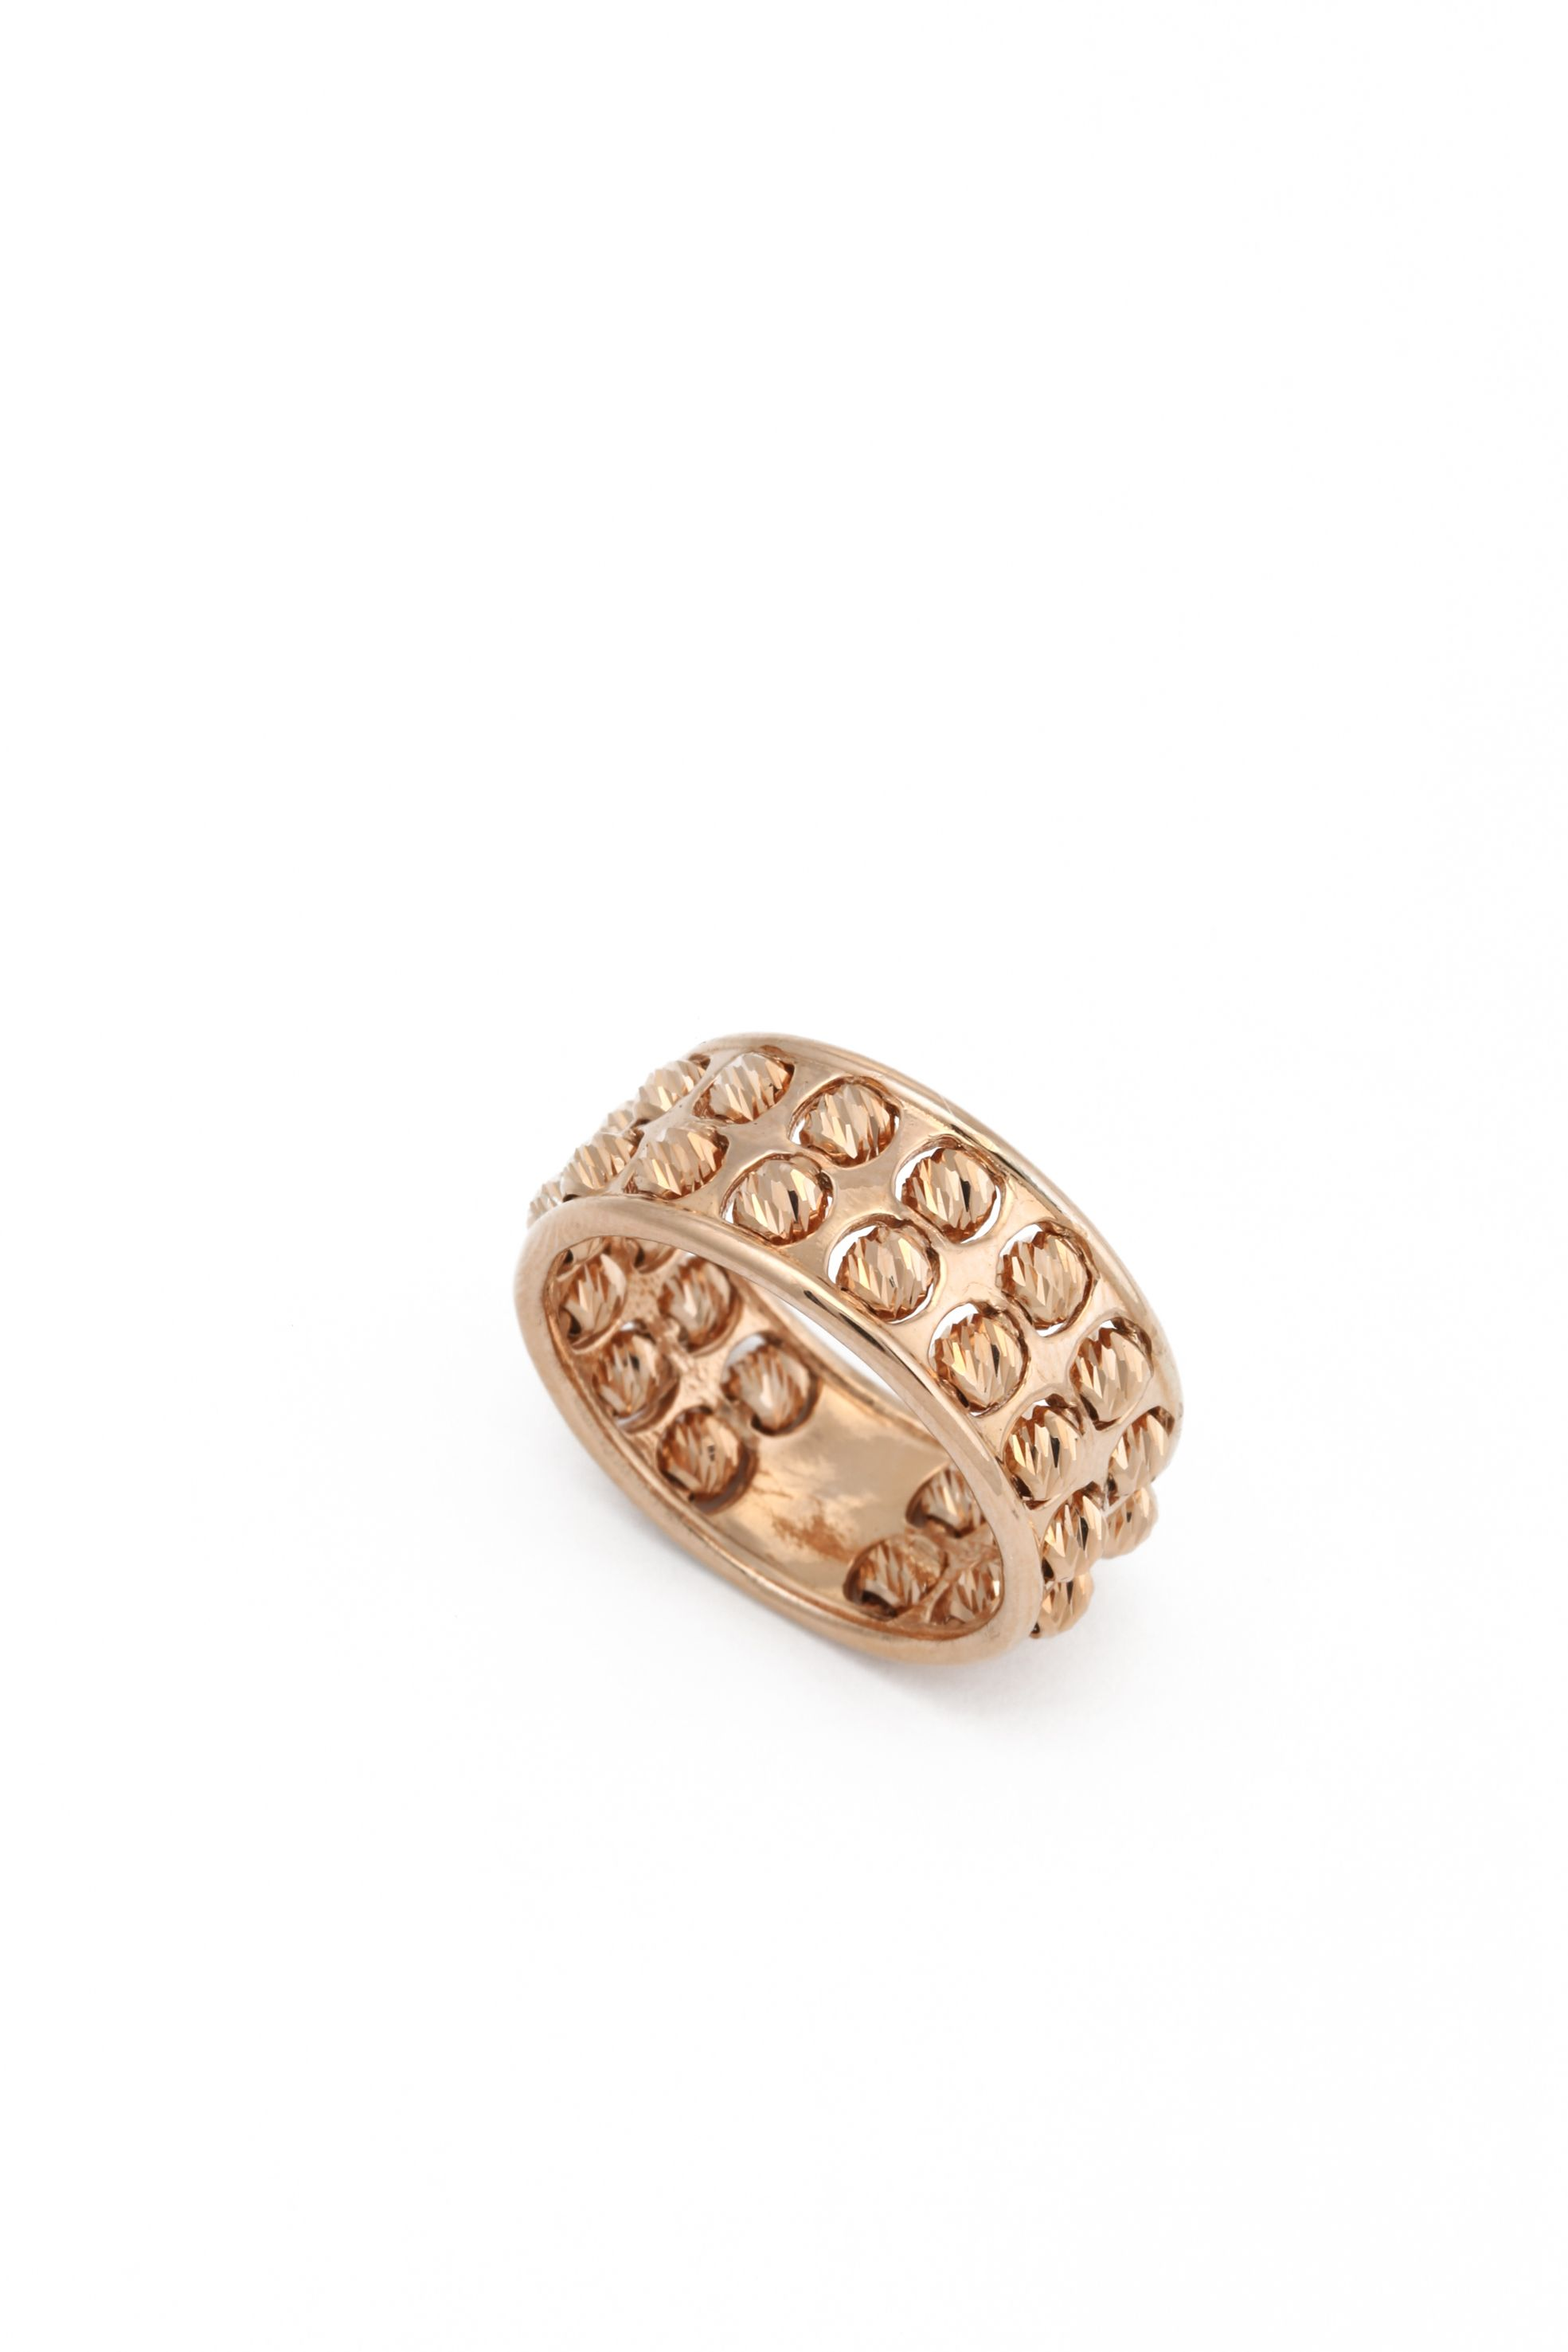 Handmade diamond cut 24ct rose gold classic ring